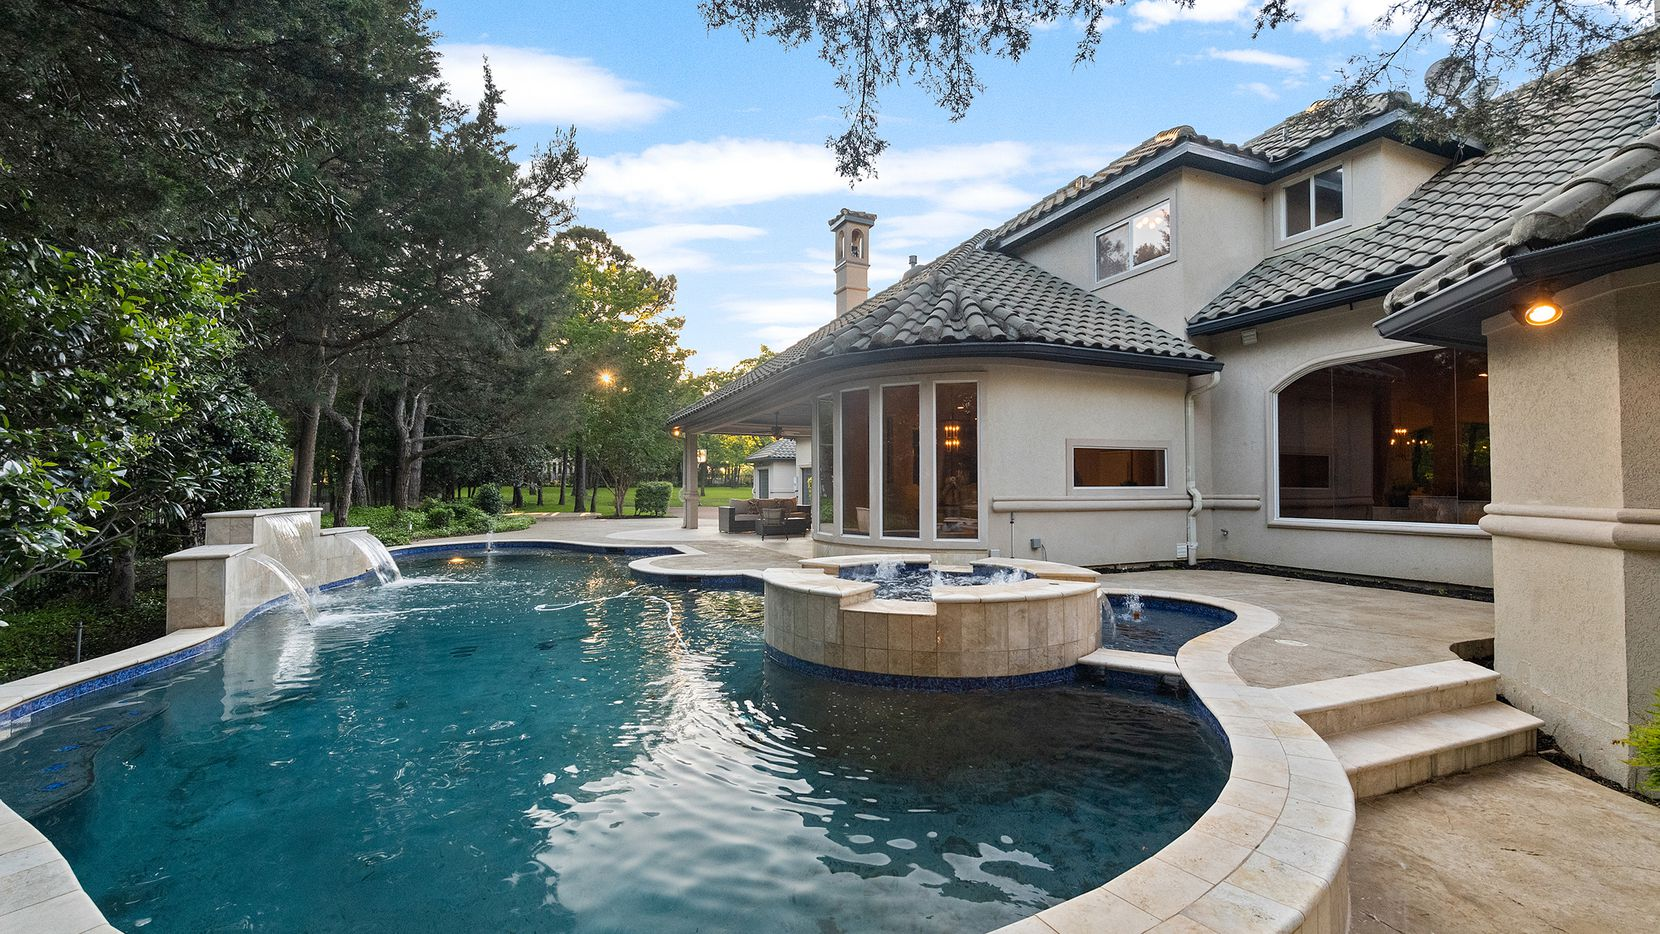 A home with a pool, such as the one at 1804 Leeds in Southlake, captures the essence of summer and Allie Beth Allman agents have listing options for you.